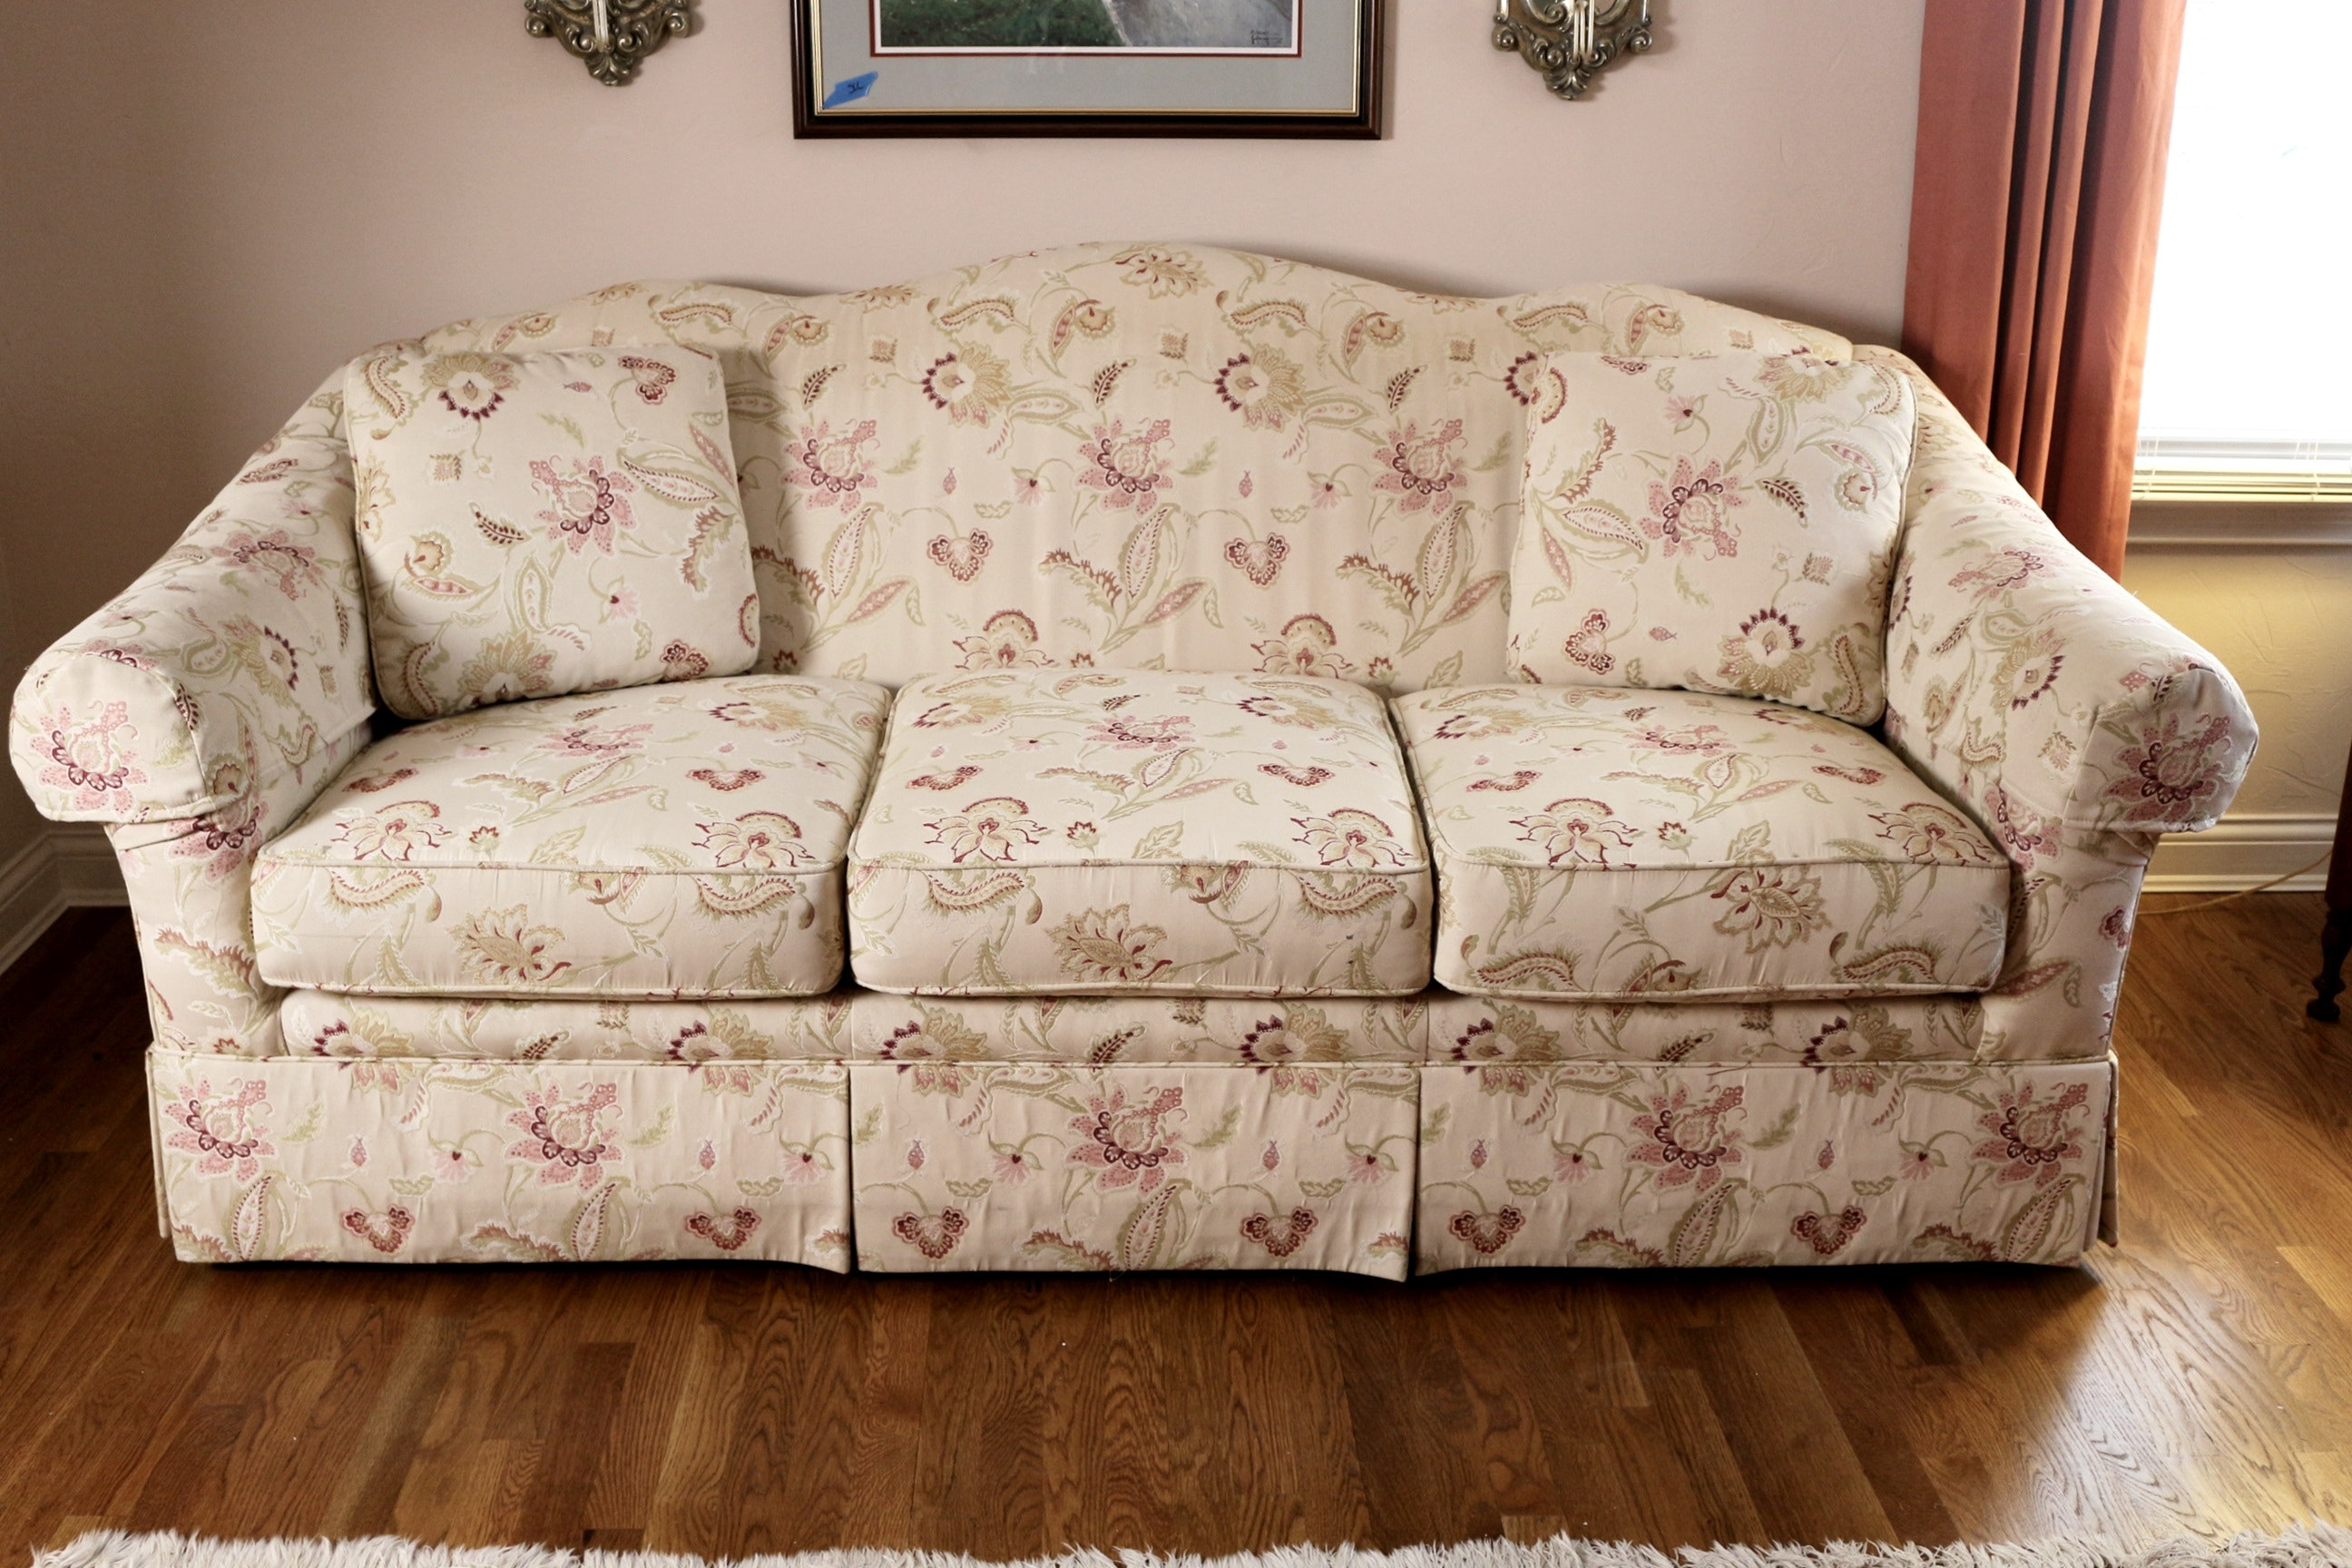 Elegant Ivory And Floral Sofa By Sherrill Furniture ...